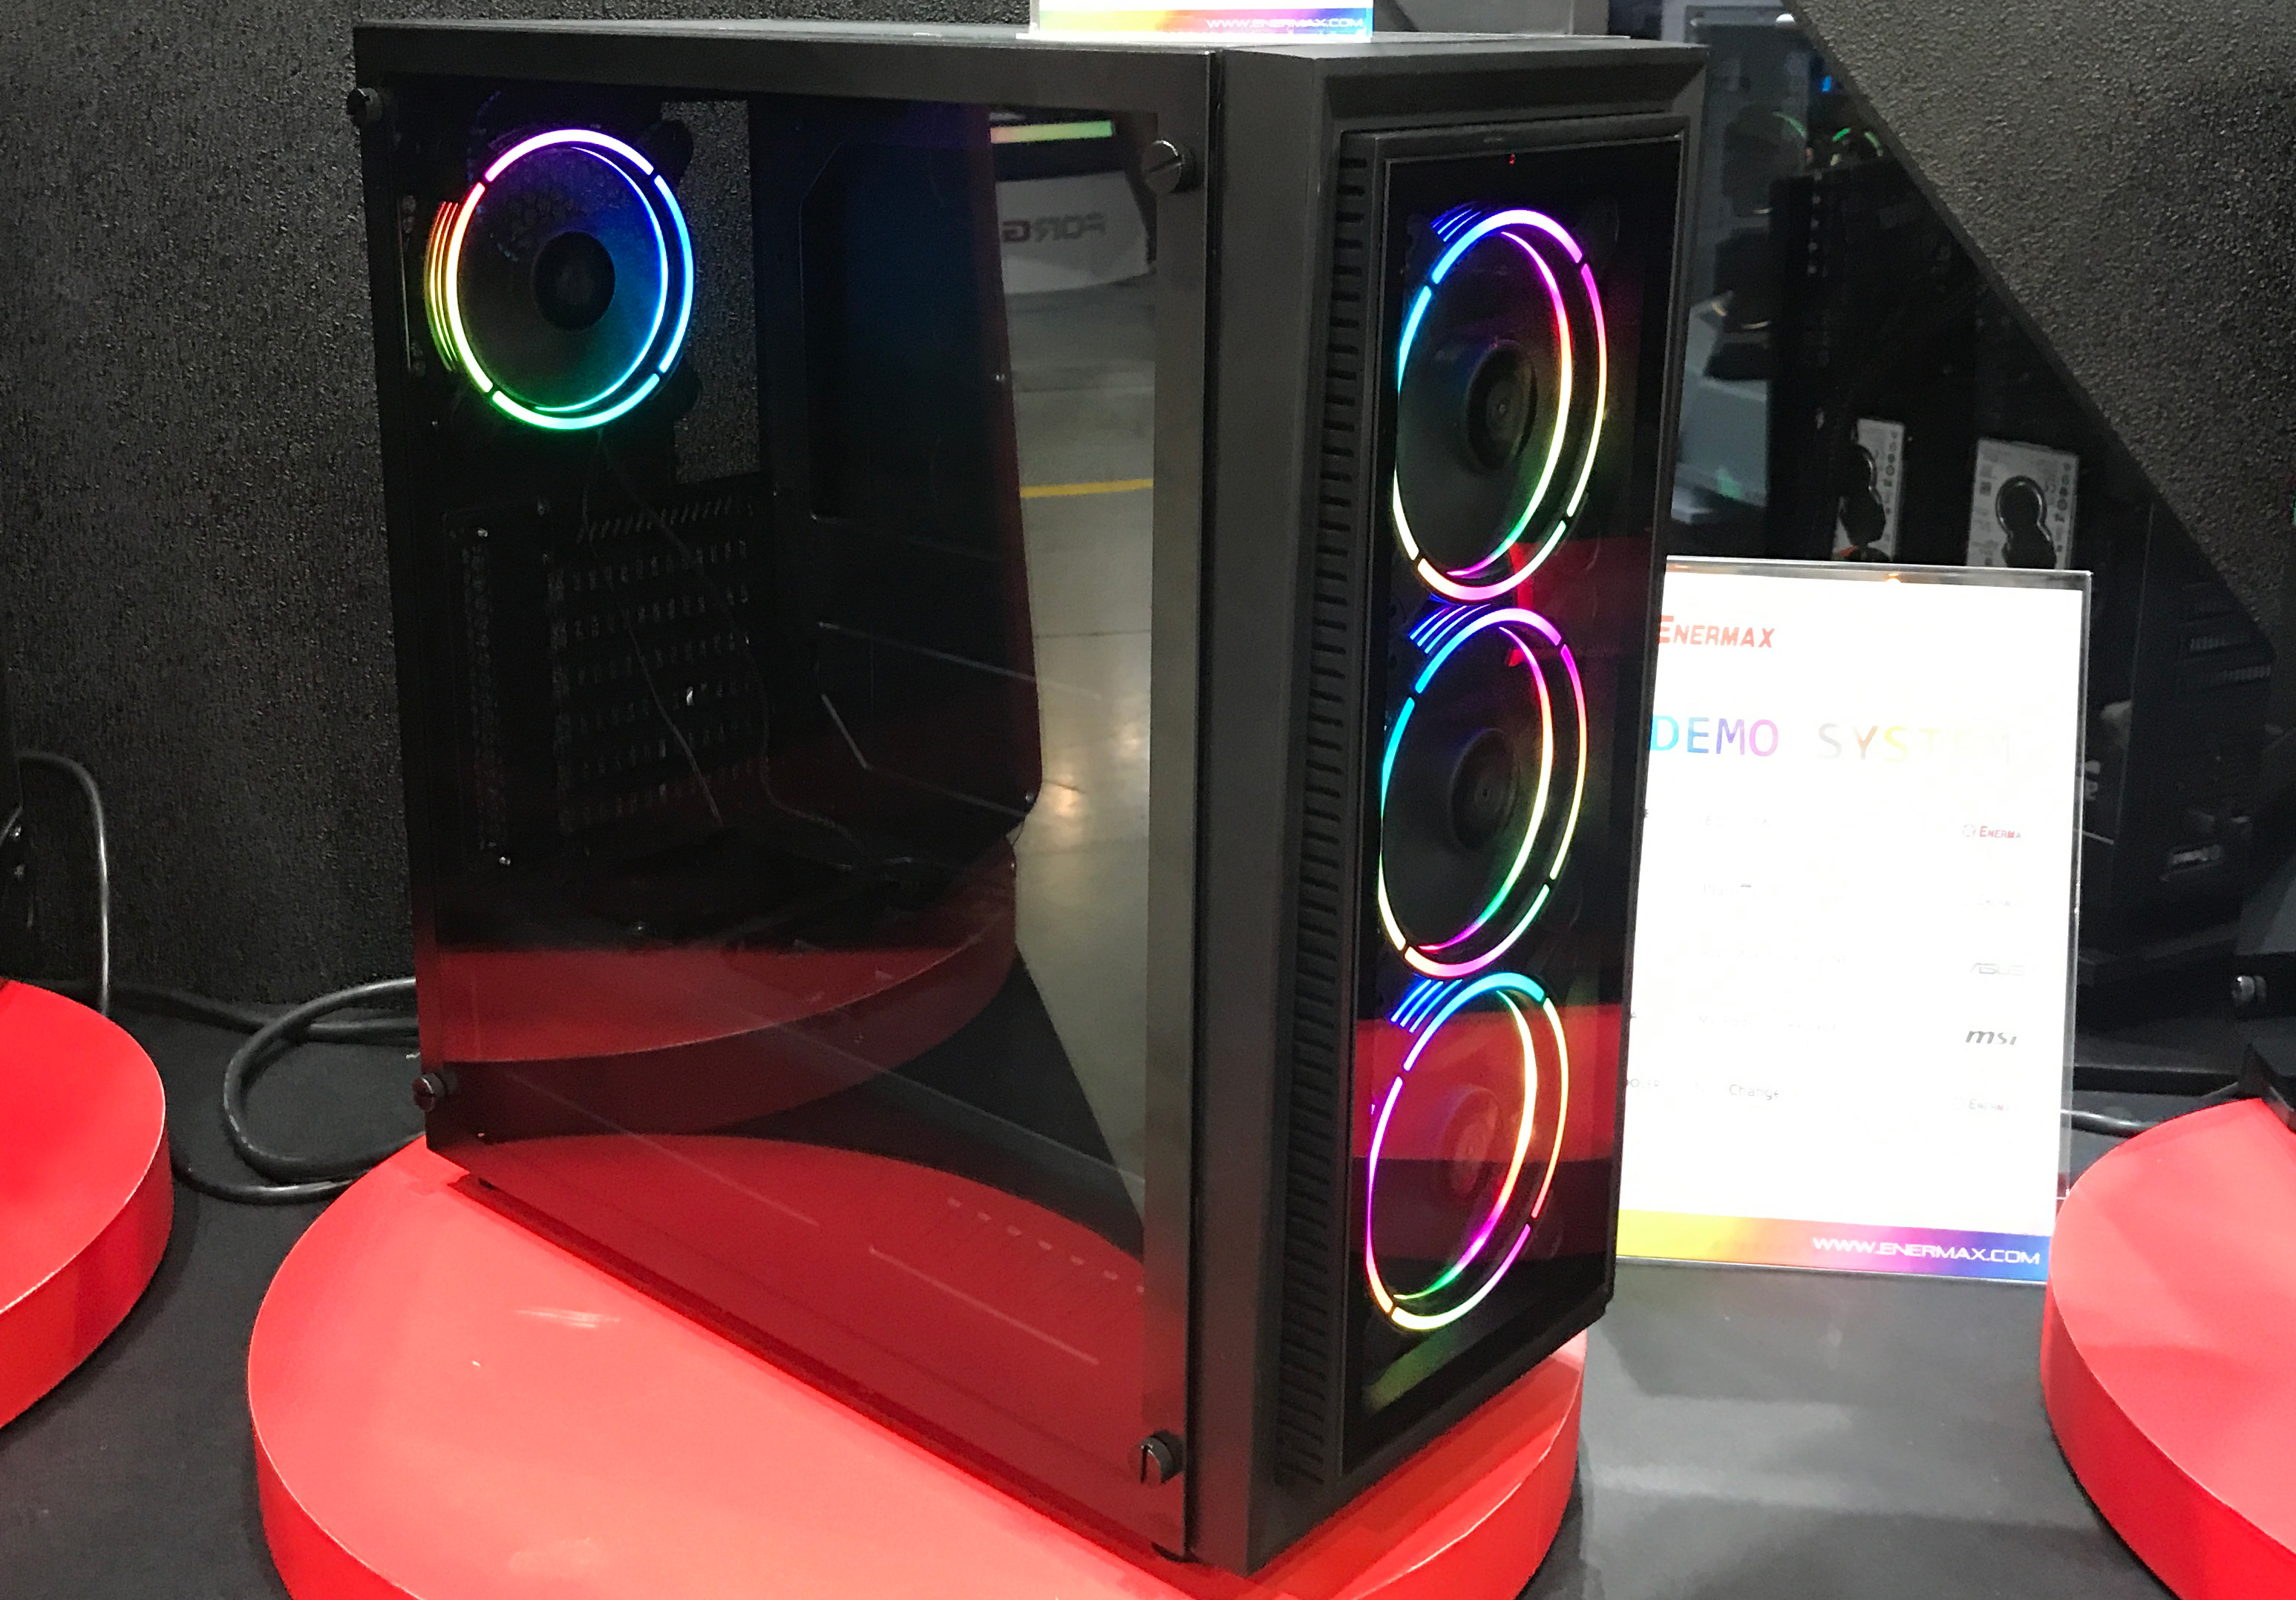 Enermax readies sub $100 pc case with addressable rgb lighting